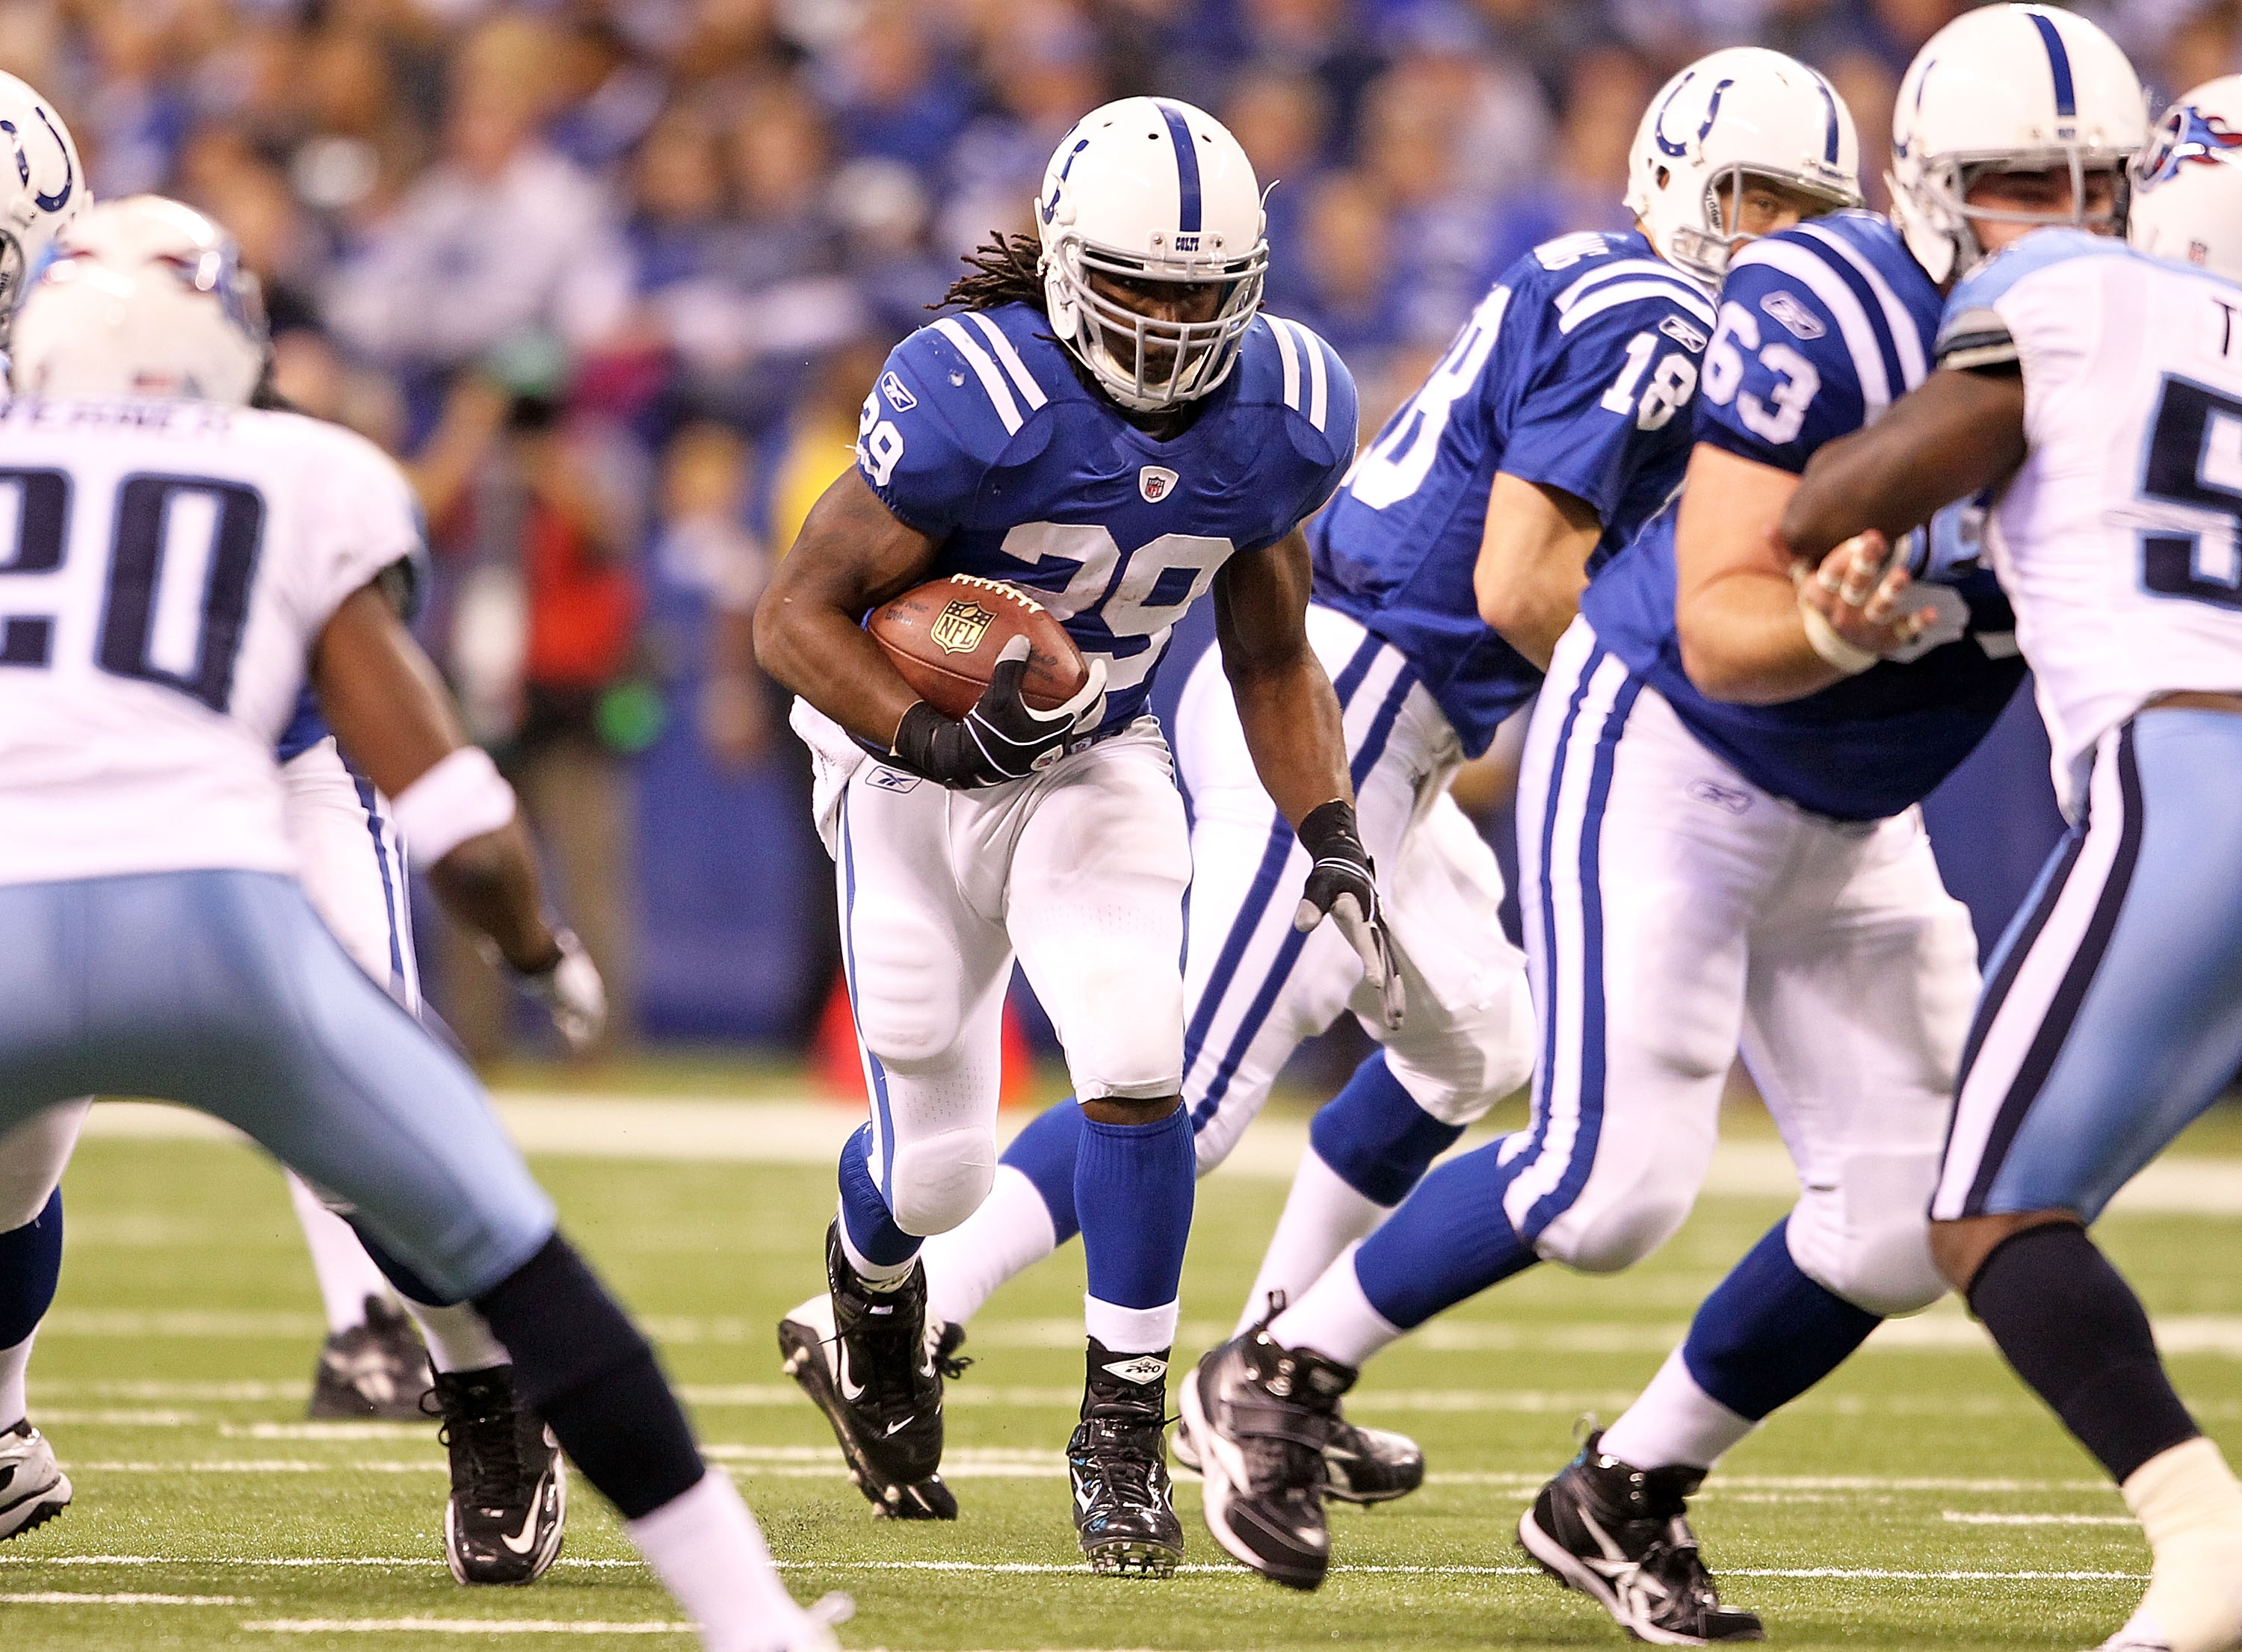 INDIANAPOLIS - JANUARY 02:  Joseph Addai  #29 of the Indianapolis Colts runs with the ball during NFL game against the Tennessee Titans at Lucas Oil Stadium on January 2, 2011 in Indianapolis, Indiana.  (Photo by Andy Lyons/Getty Images)